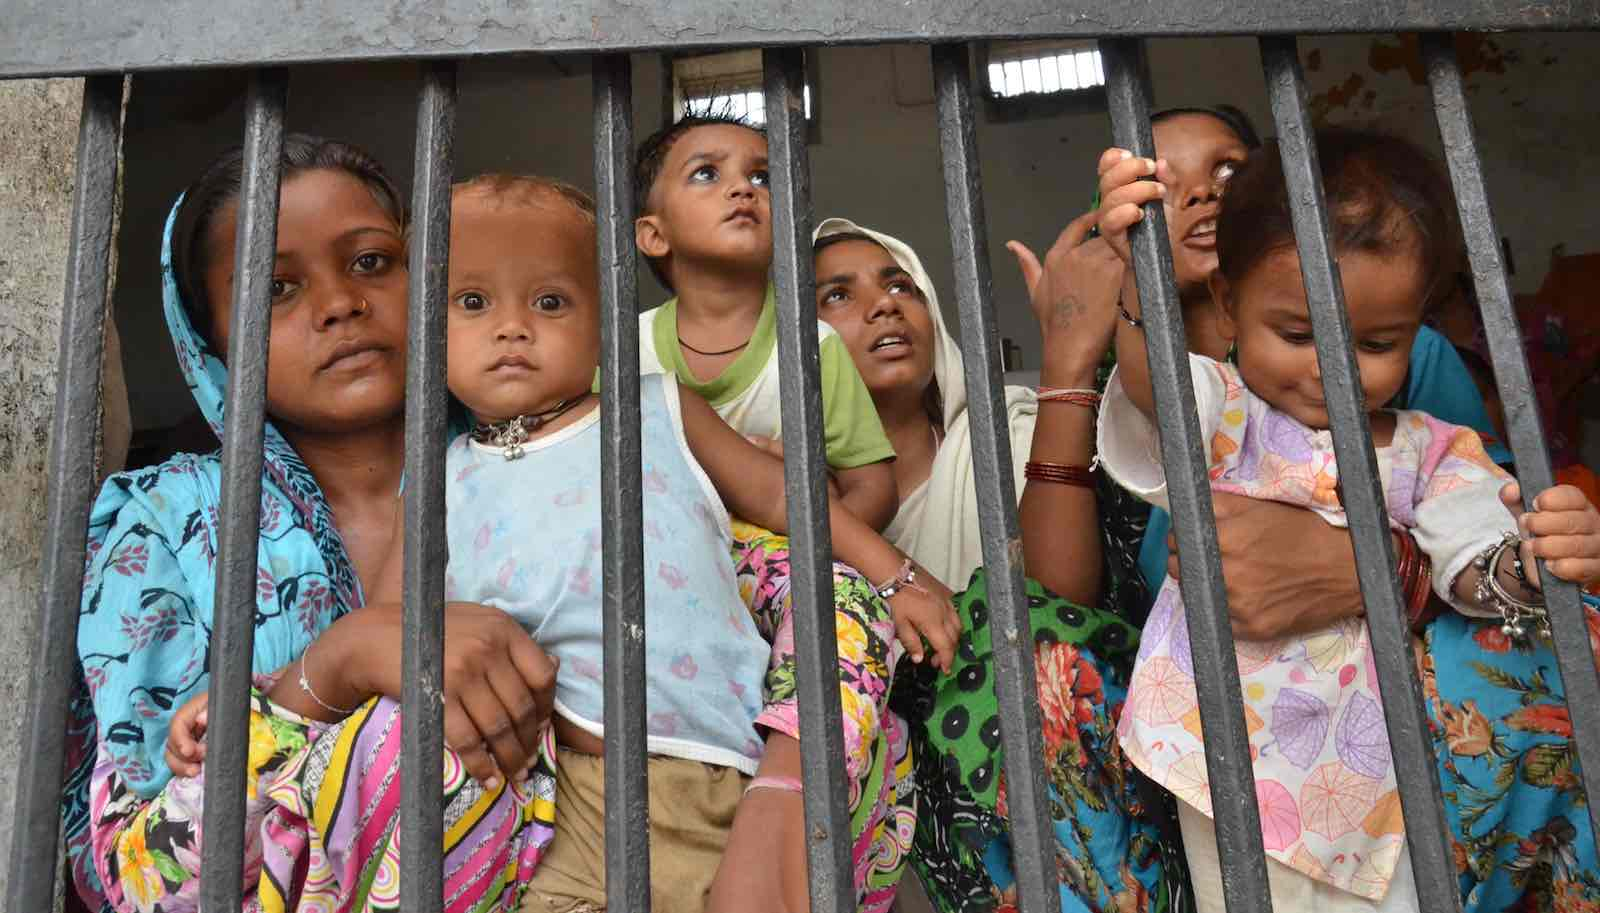 Women inmates bringing up their children behind bars in Amritsar, India, 2014 (Photo: Sameer Sehgal via Getty)